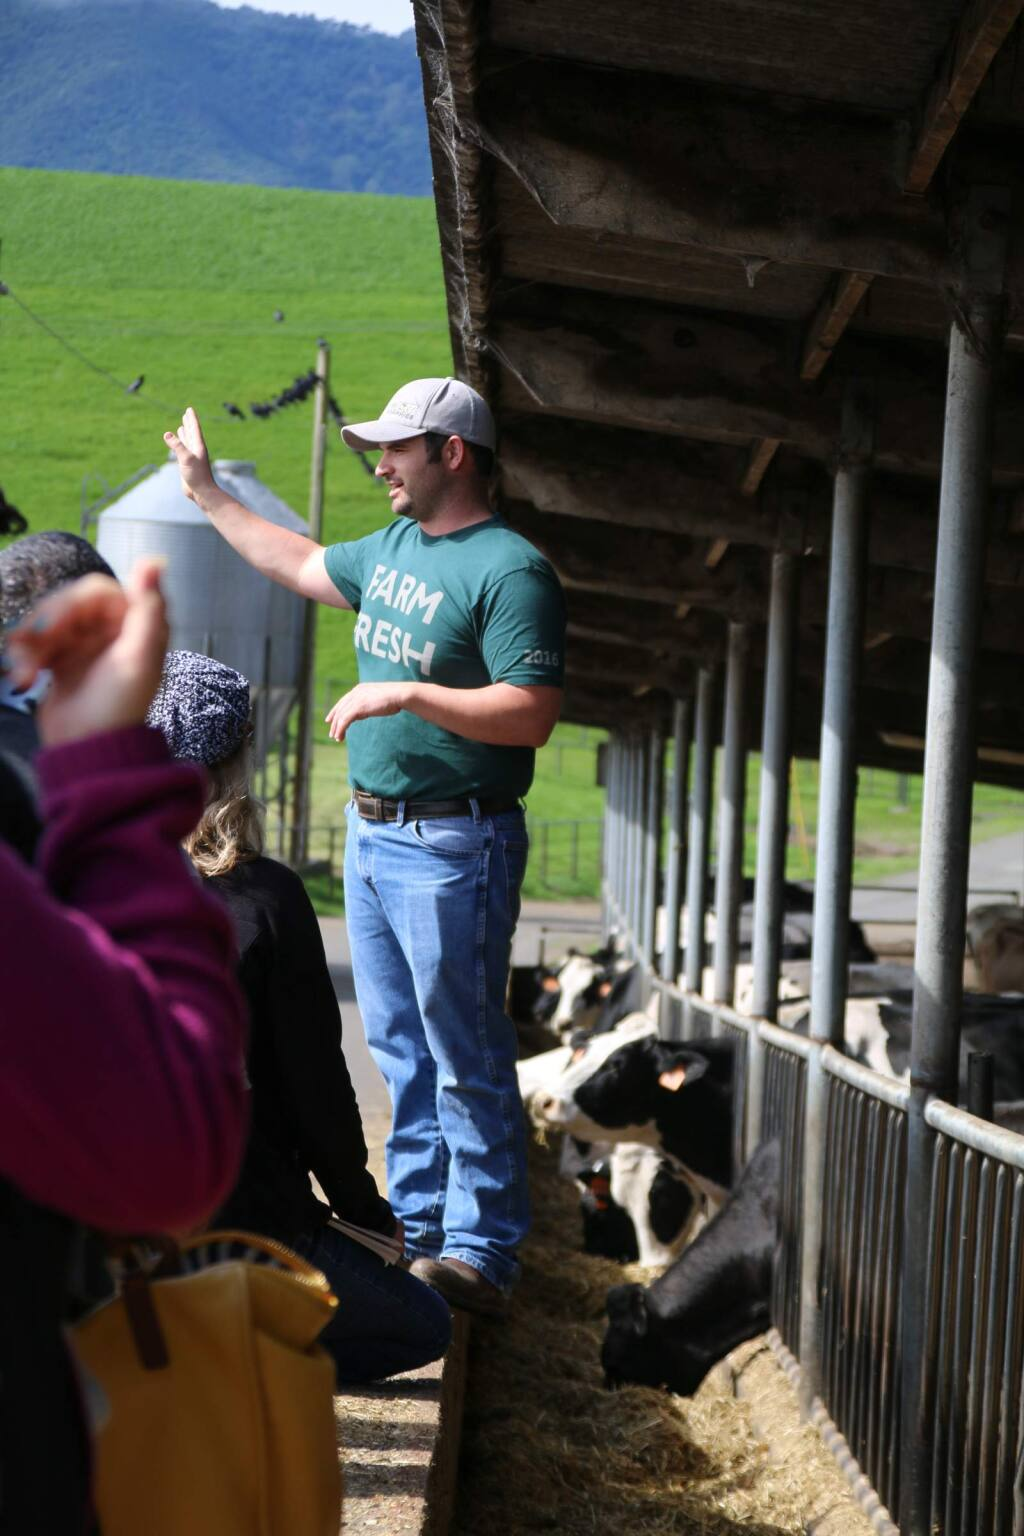 Brannon Areias guides guests at Point Reyes Farmstead Cheese Company/The Fork during a farm tour at the 10th Annual California's Artisan Cheese Festival Saturday, March 19, 2016. (Victoria Webb/For The Argus-Courier)